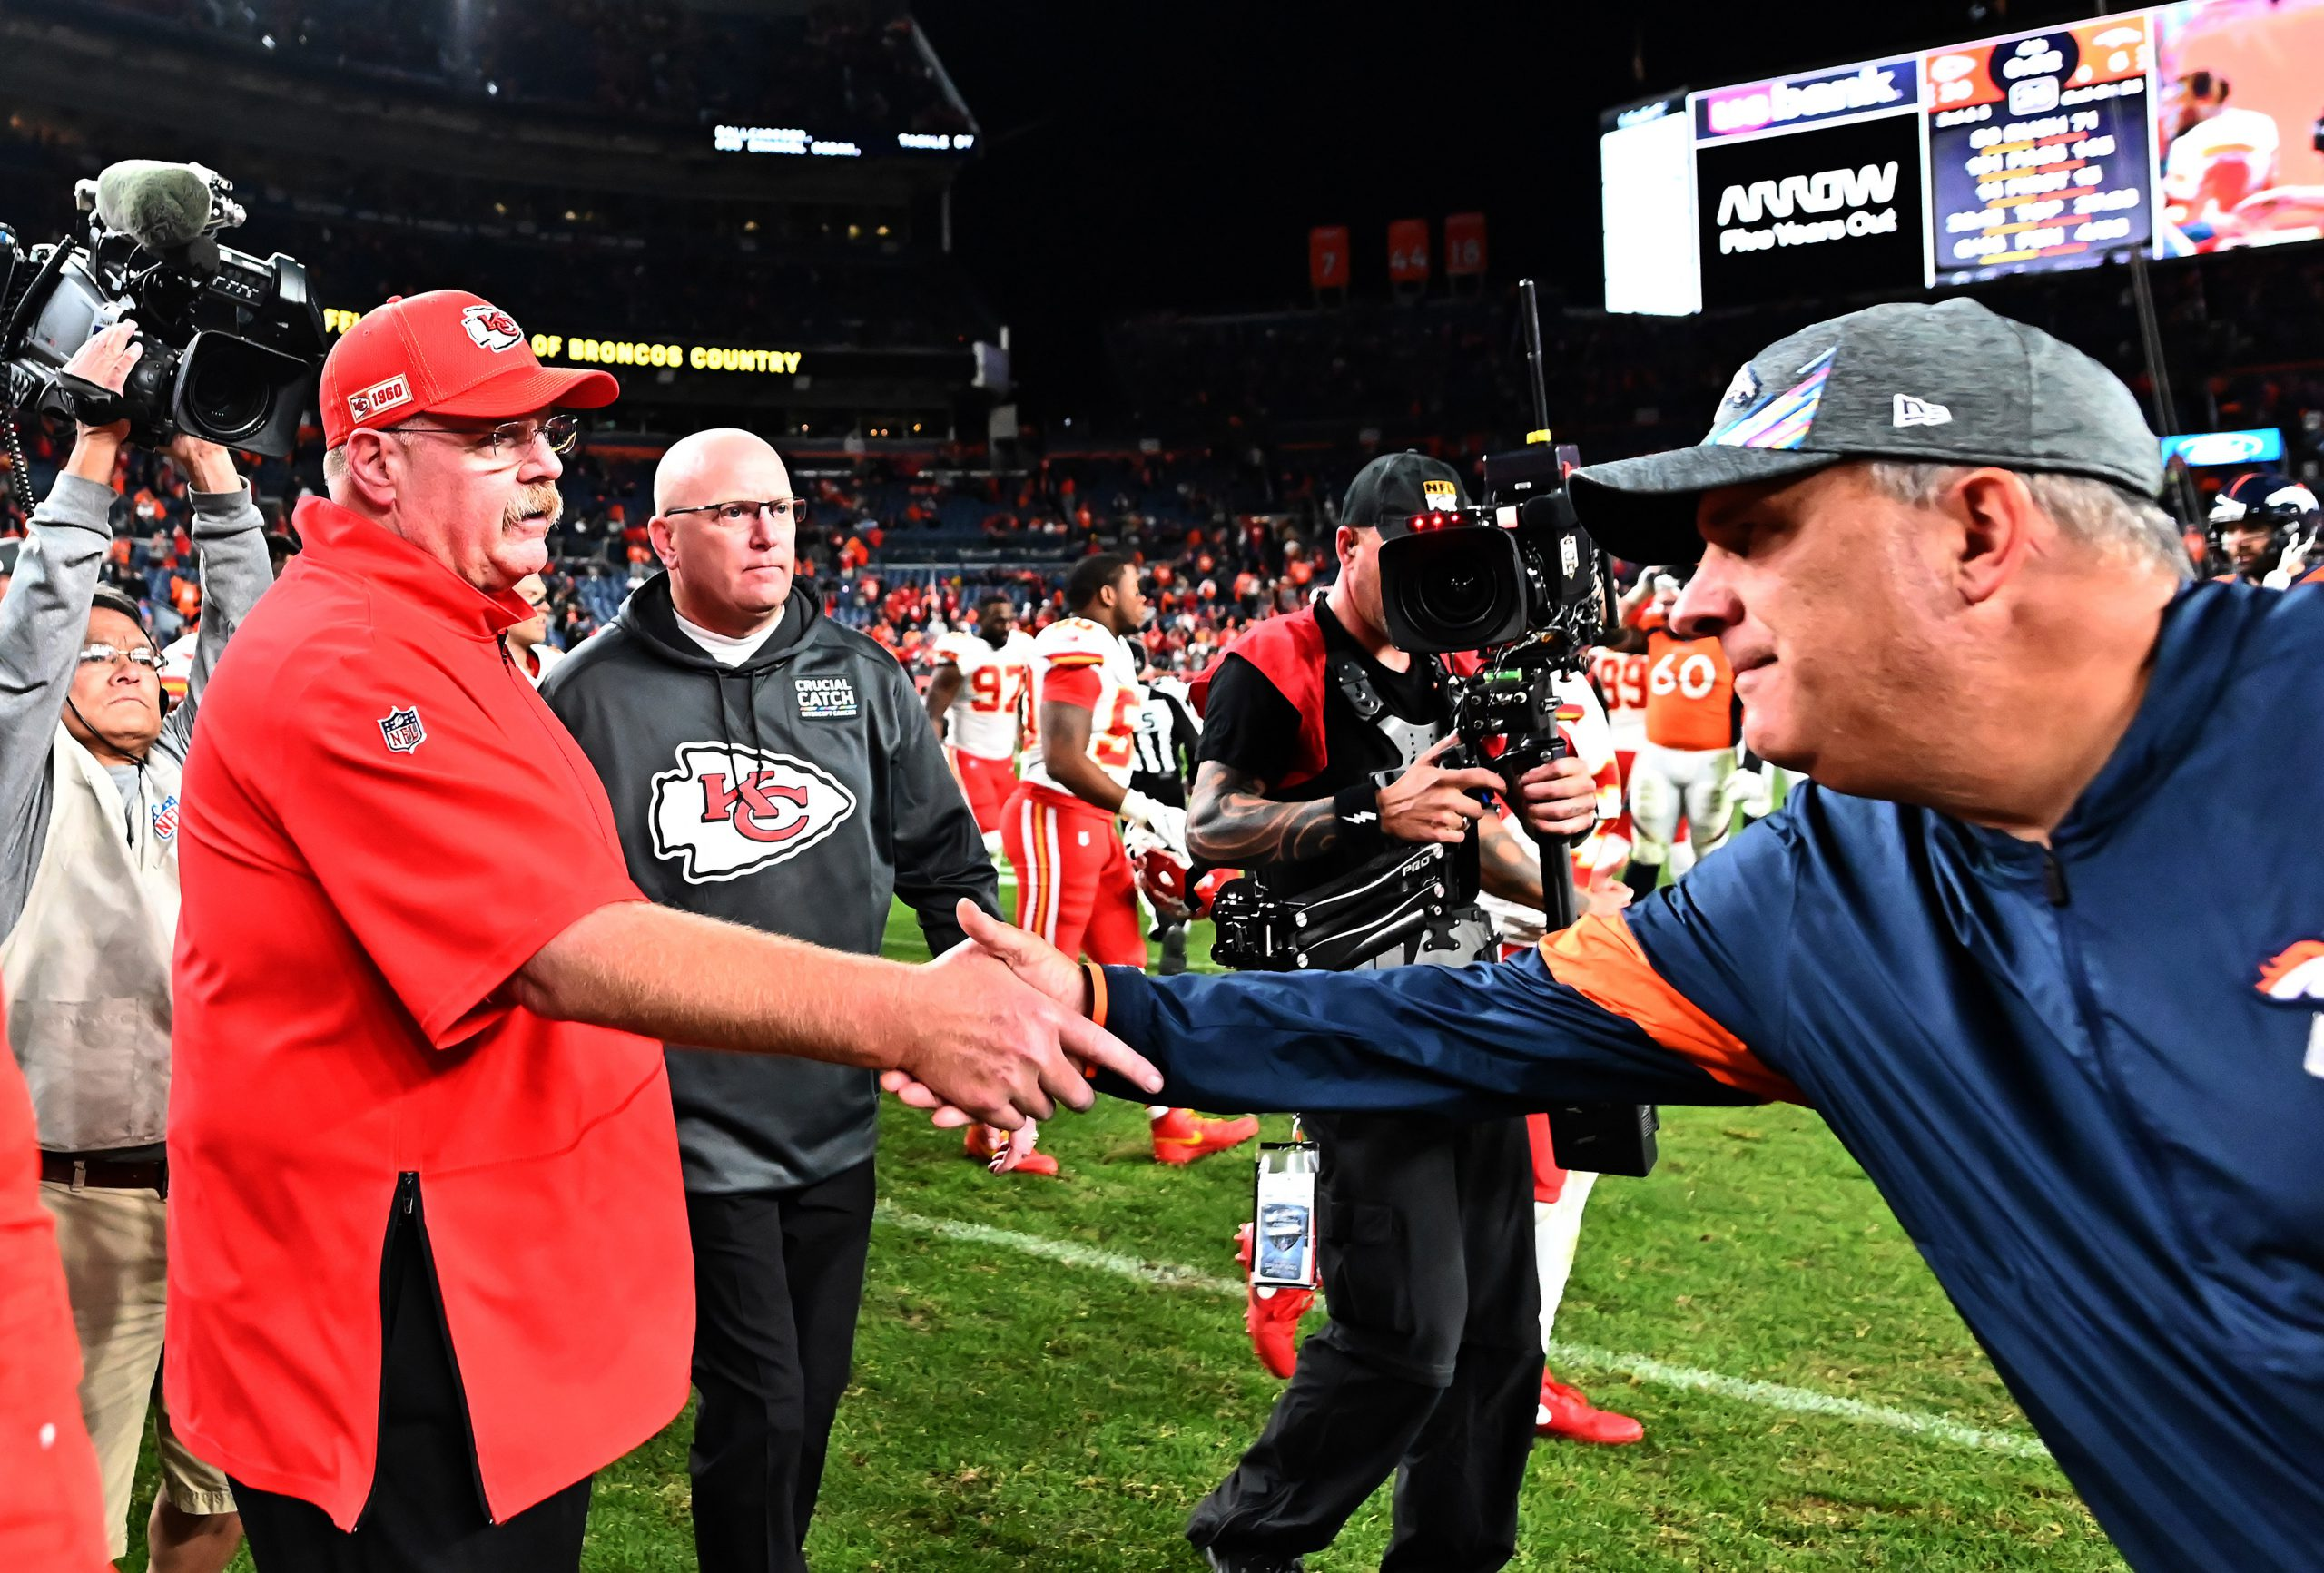 Oct 17, 2019; Denver, CO, USA; Kansas City Chiefs head coach Andy Reid and Denver Broncos head coach Vic Fangio following the game at Empower Field at Mile High. Mandatory Credit: Ron Chenoy-USA TODAY Sports